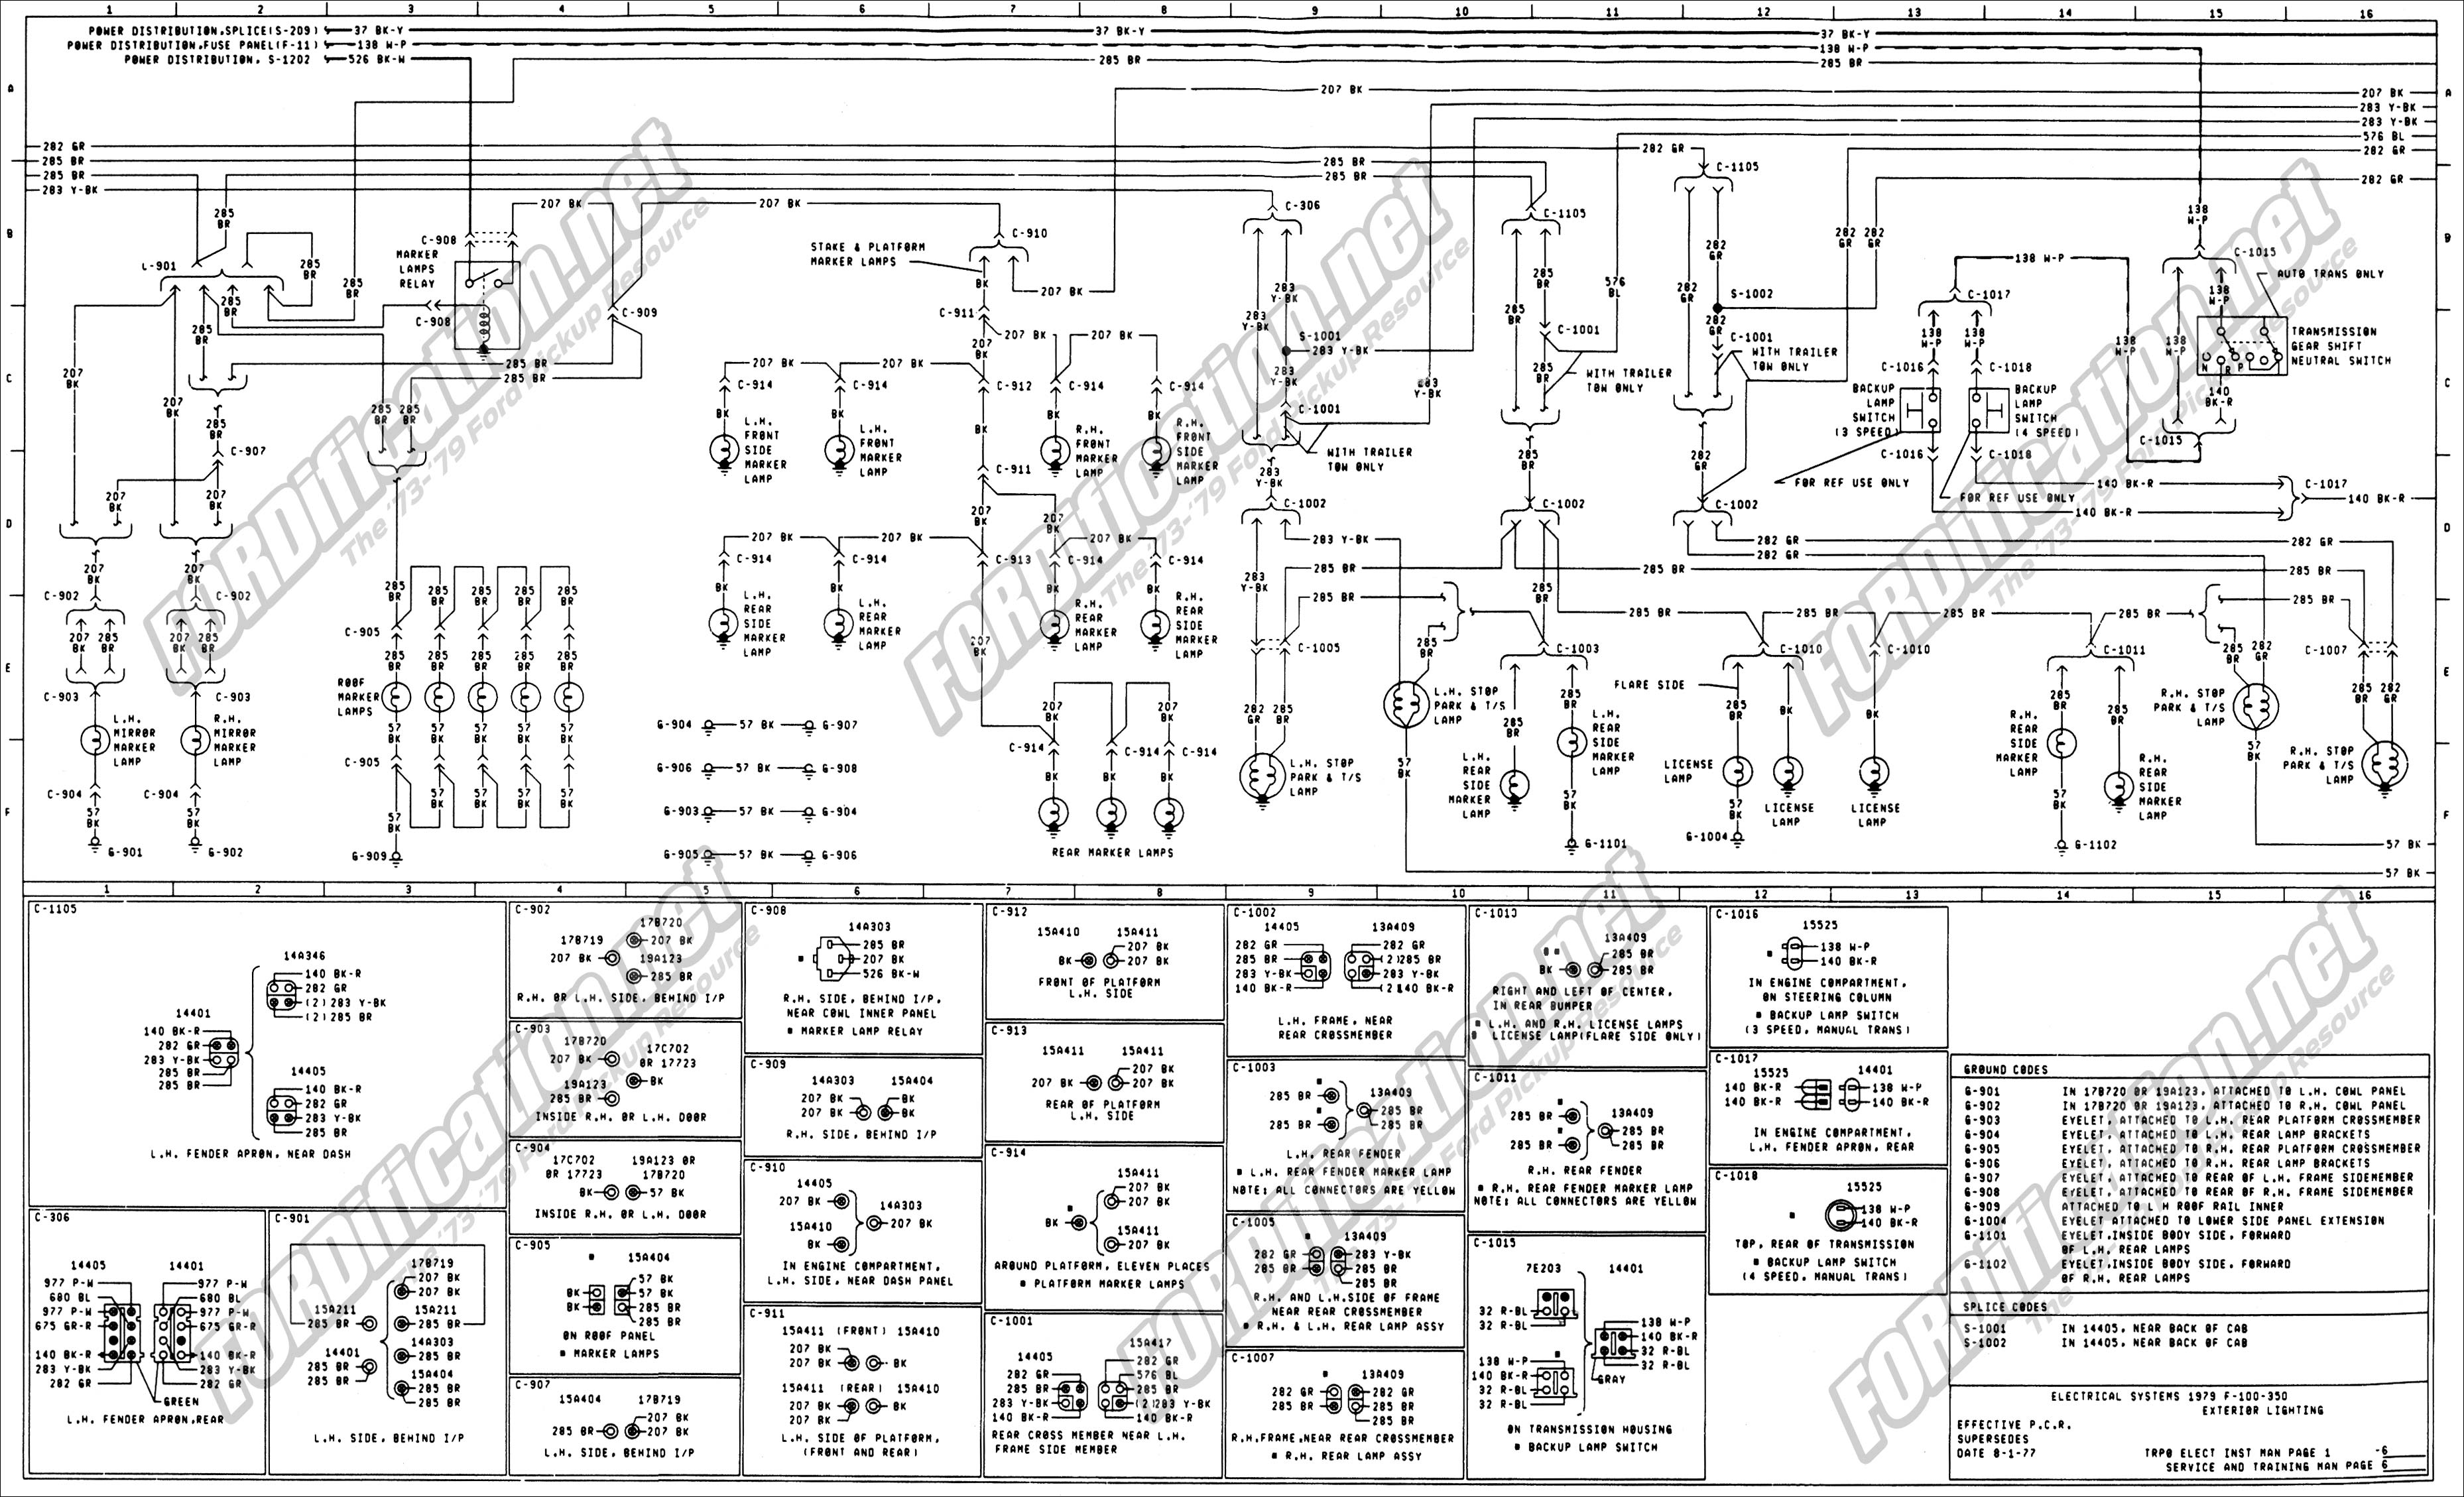 wiring_79master_6of9 84 f150 fuse box diagram ford truck enthusiasts forums wiring 1979 ford f100 fuse box diagram at creativeand.co